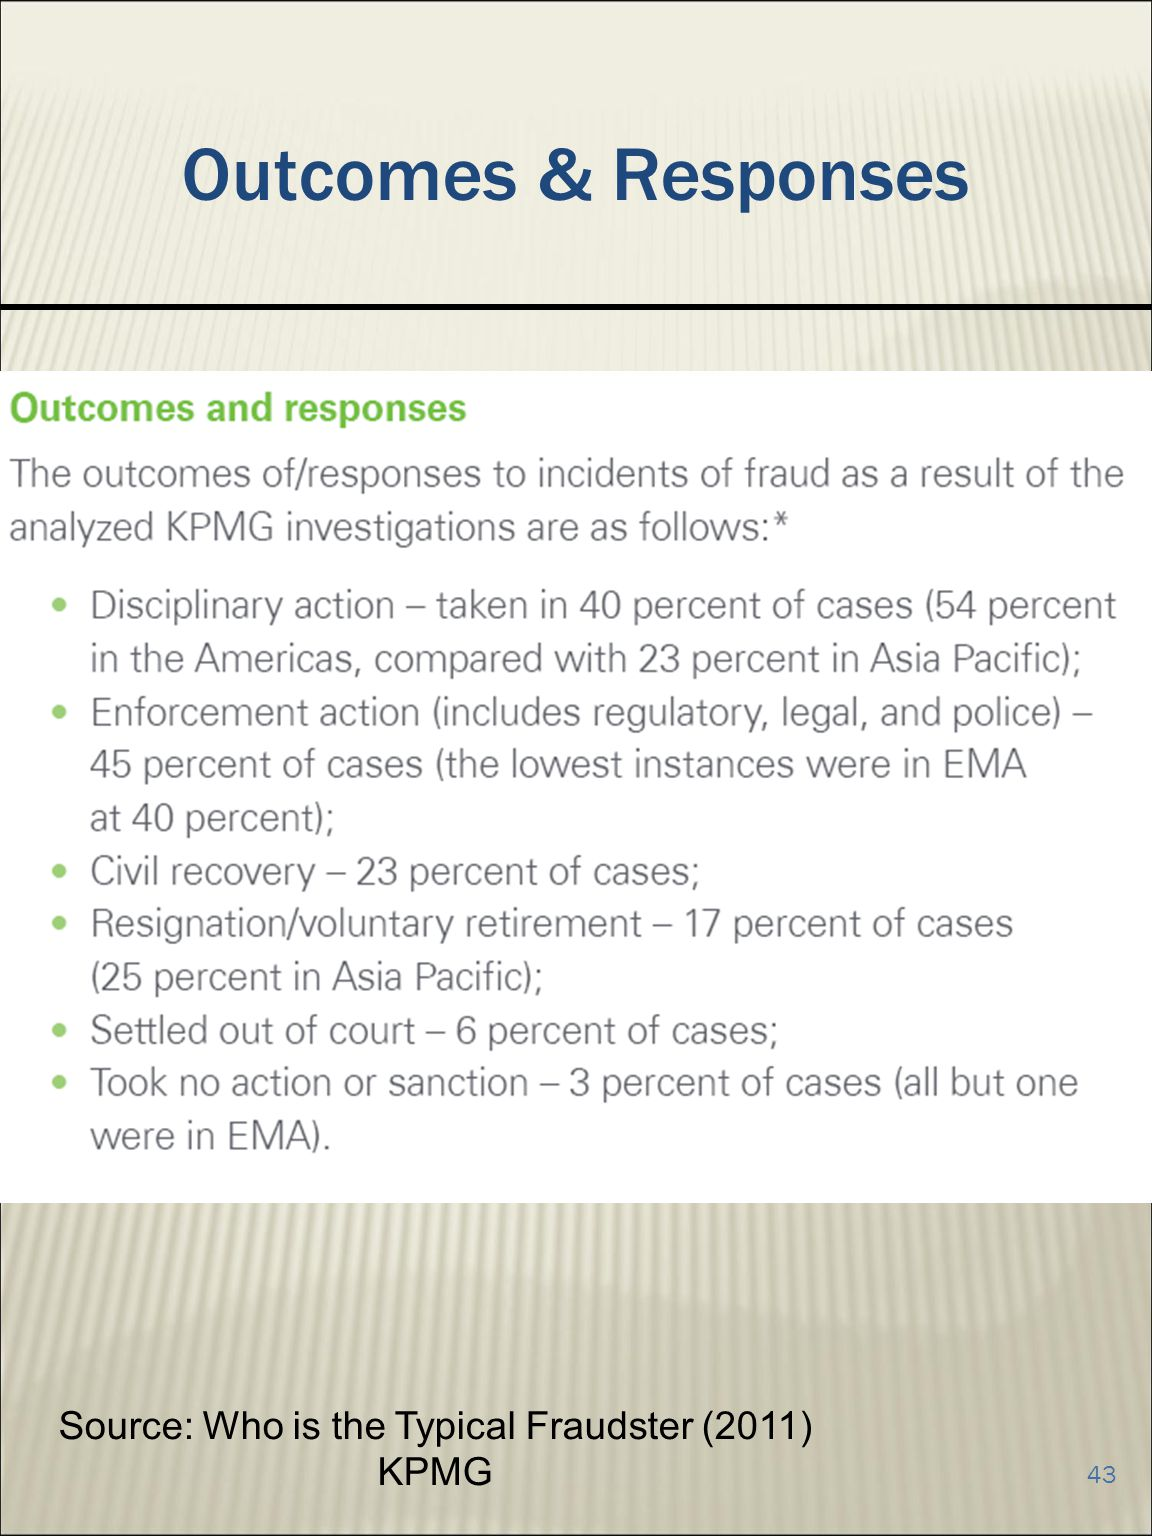 Source: Who is the Typical Fraudster (2011) KPMG